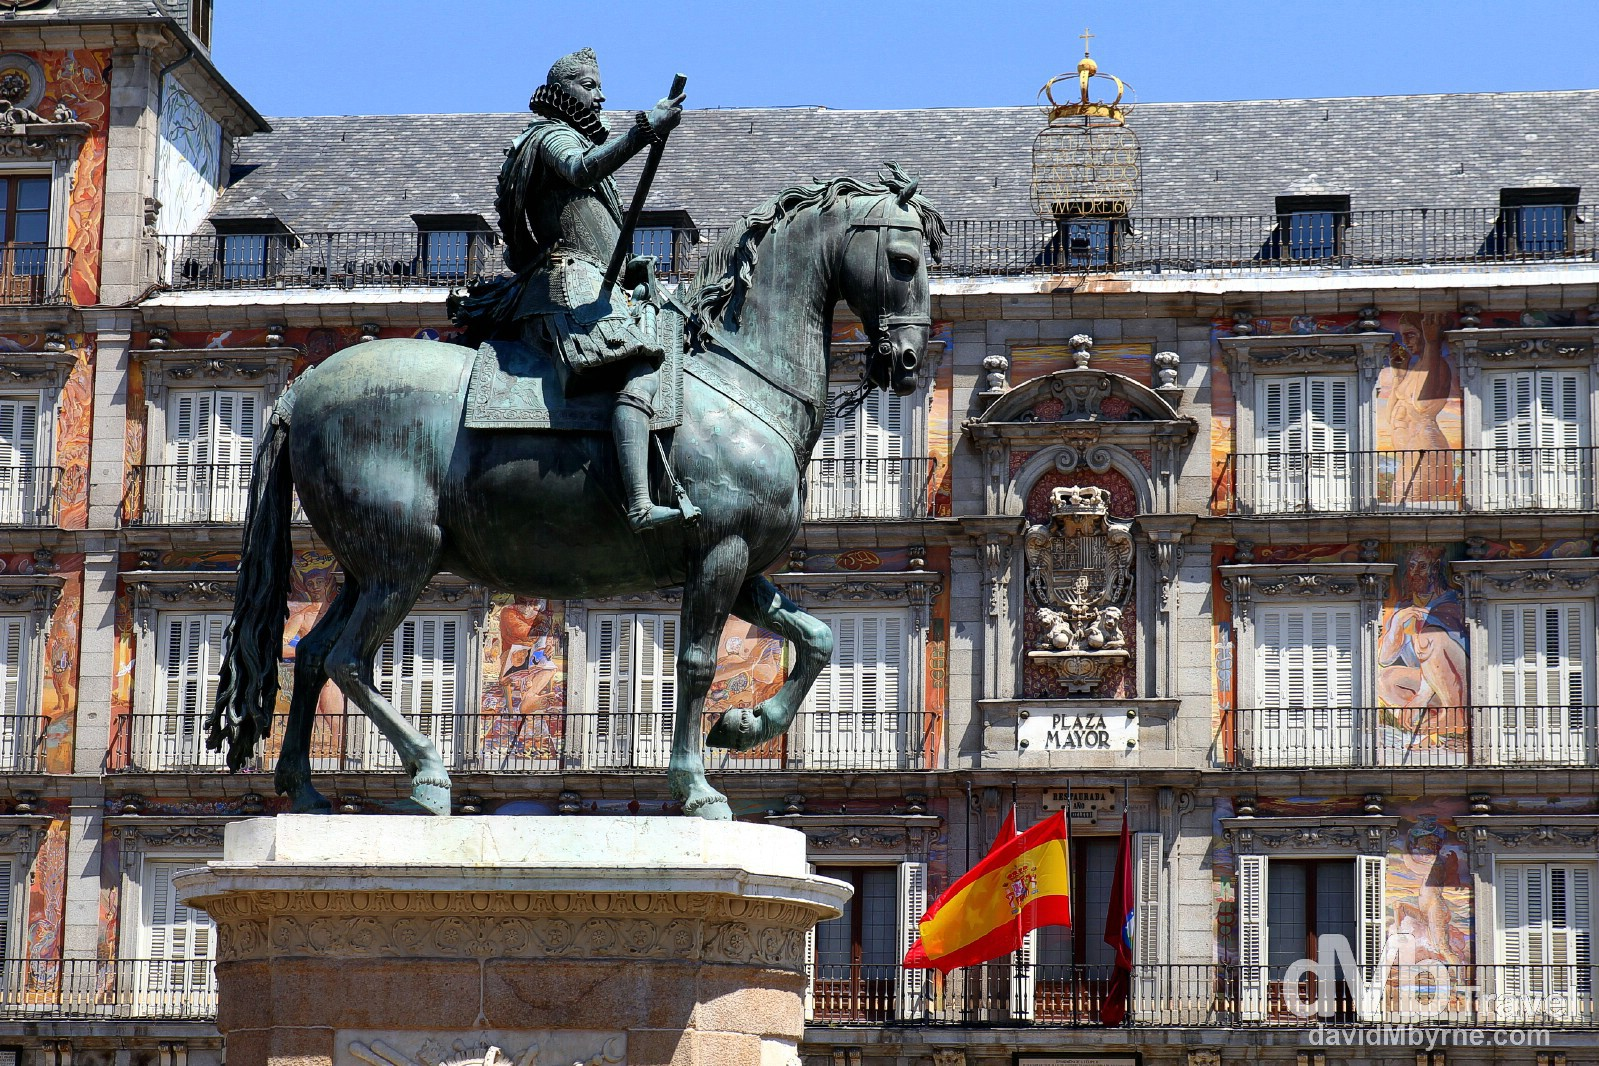 A statue of King Philip III in Plaza Mayor, Madrid, Spain. June 14th, 2014.